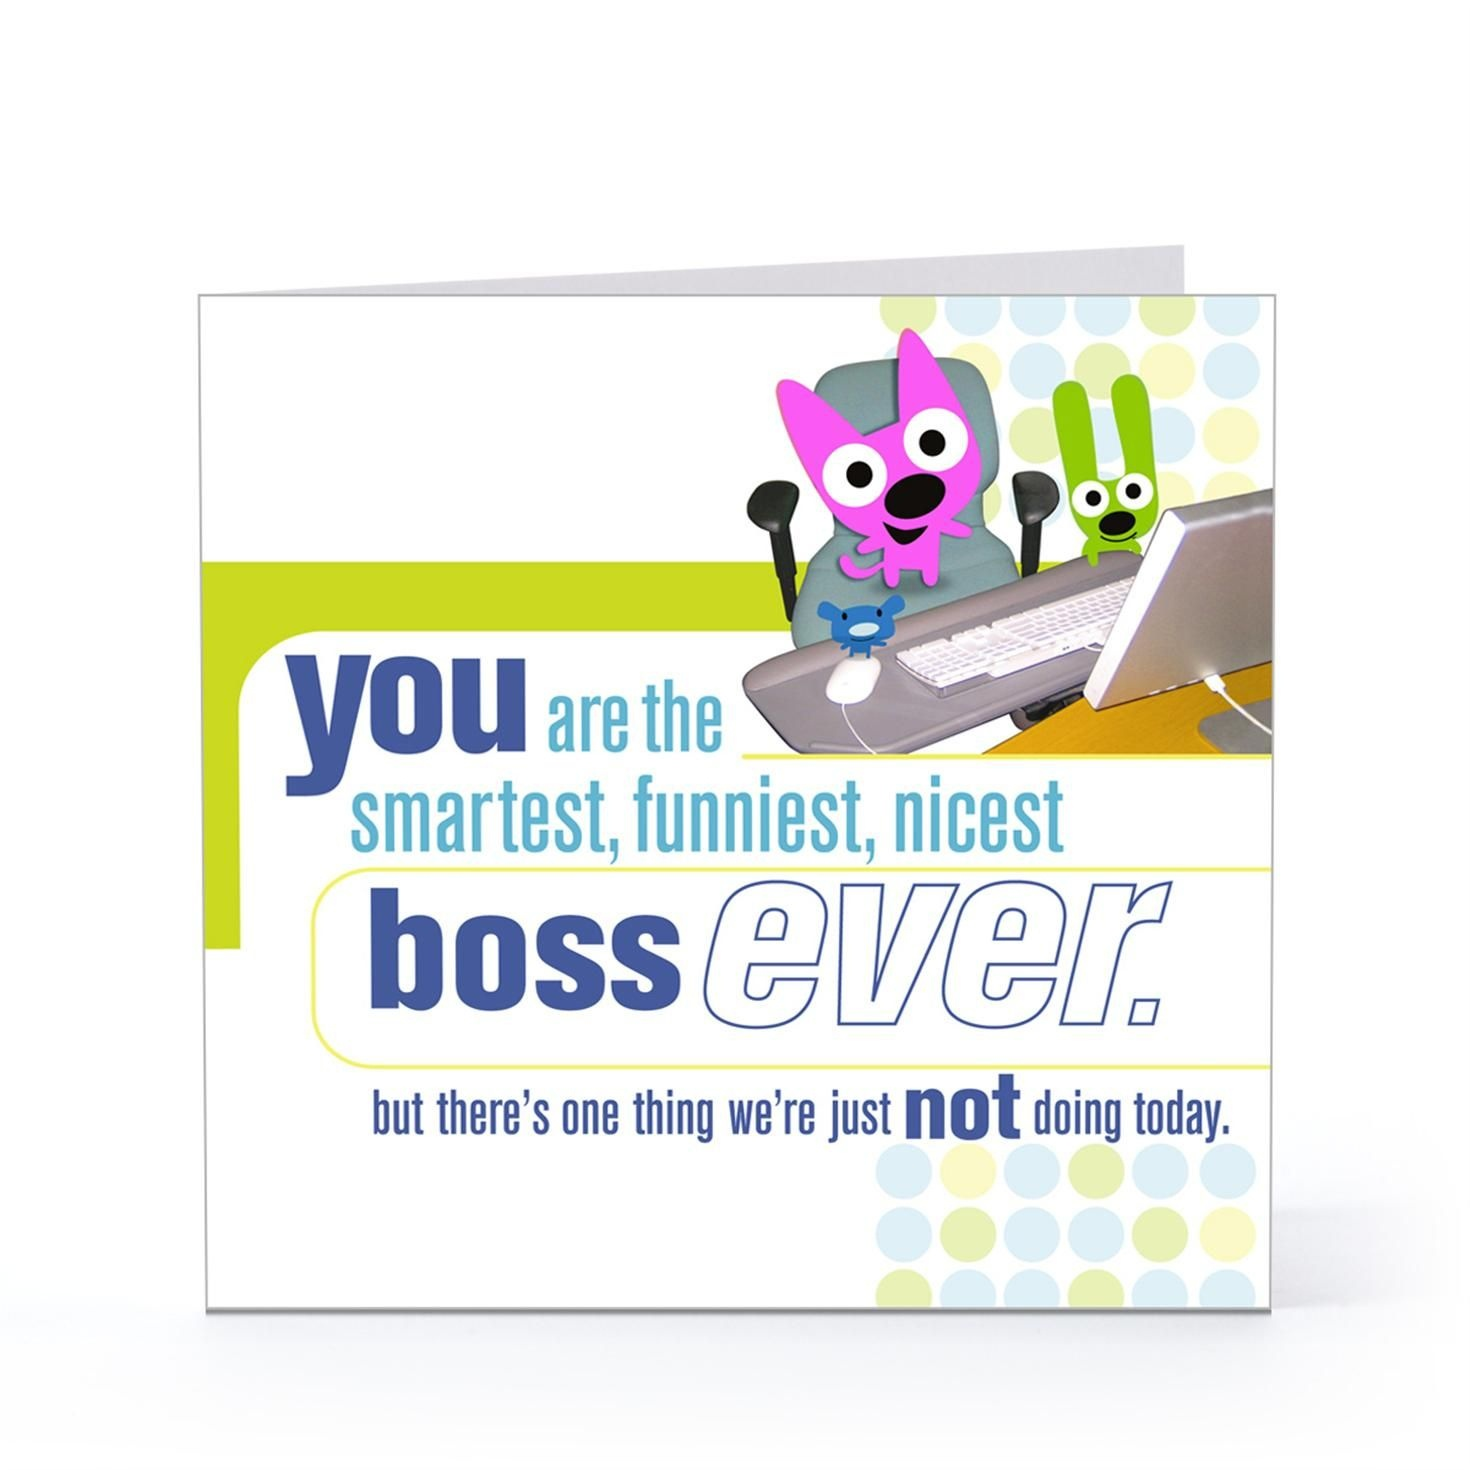 Boss Day Quotes For Facebook   Happy Boss Day Quotes Funny   Boss - Free Printable Funny Boss Day Cards